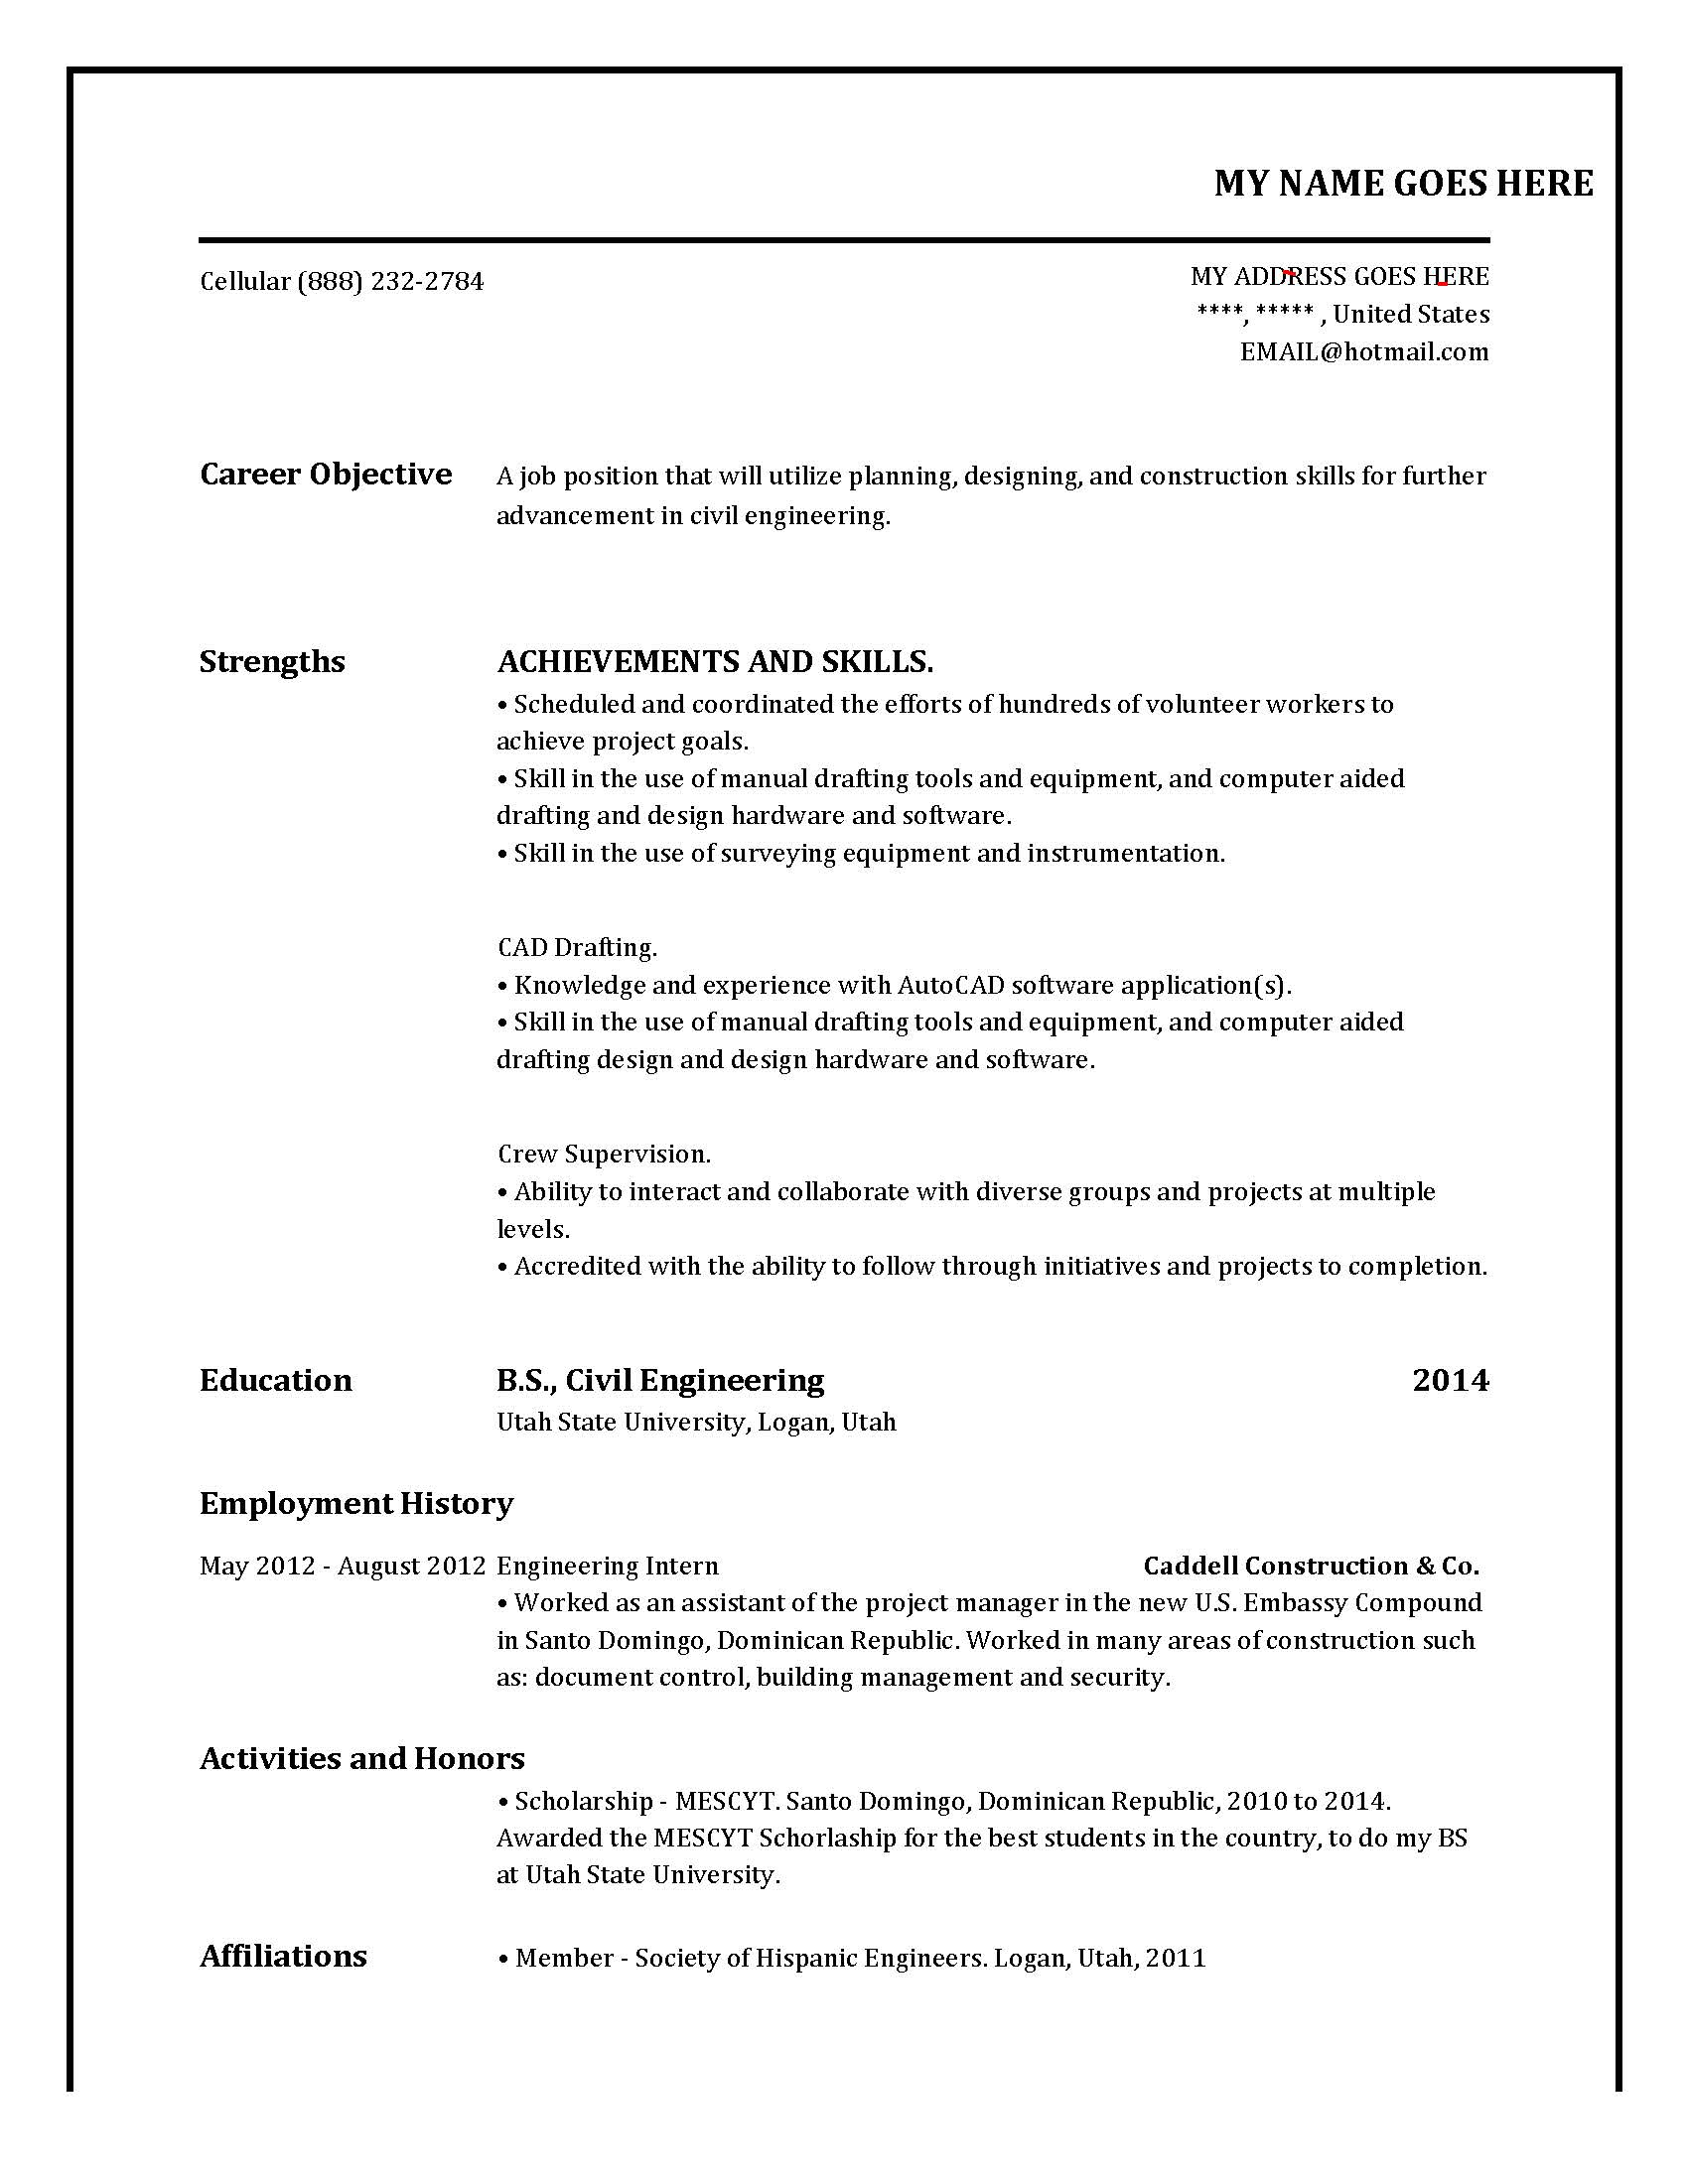 build my resume for exons tk category curriculum vitae post navigation ← build a cv for